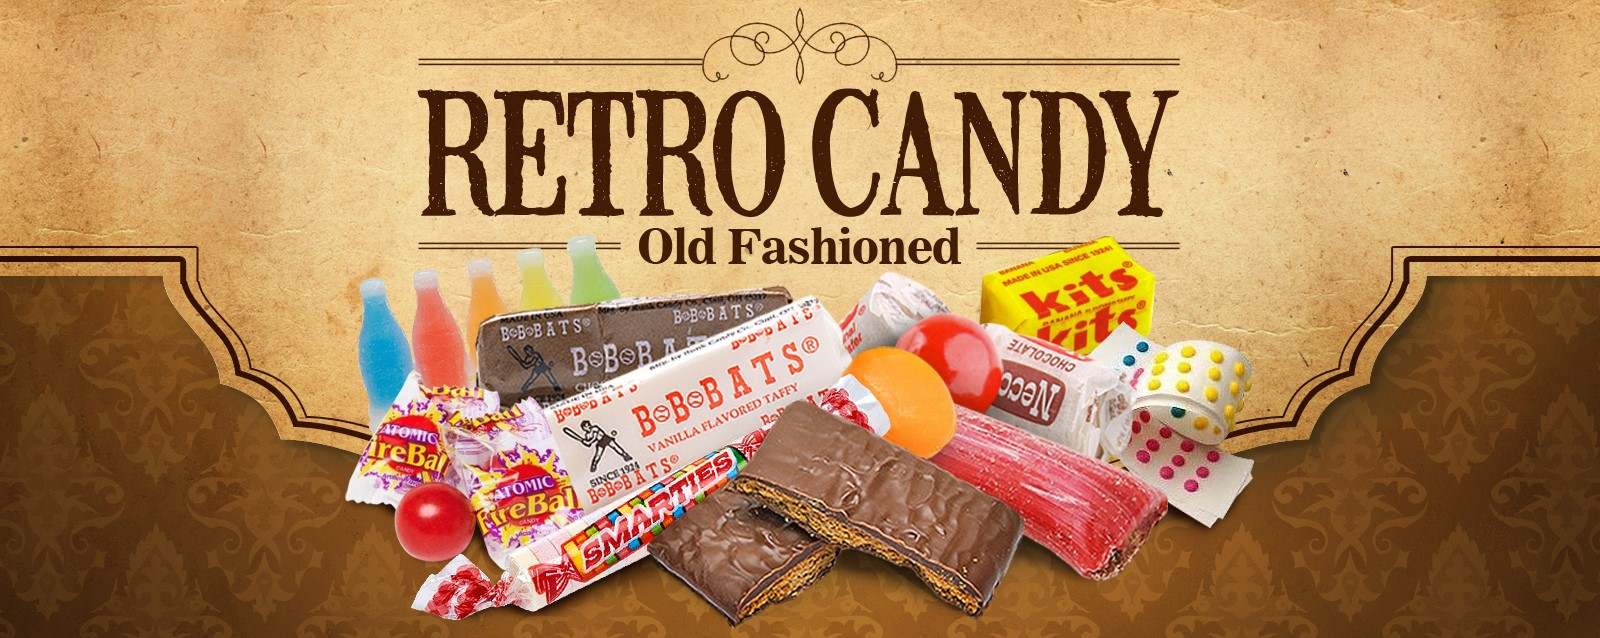 Retro Candy-Old Fashioned